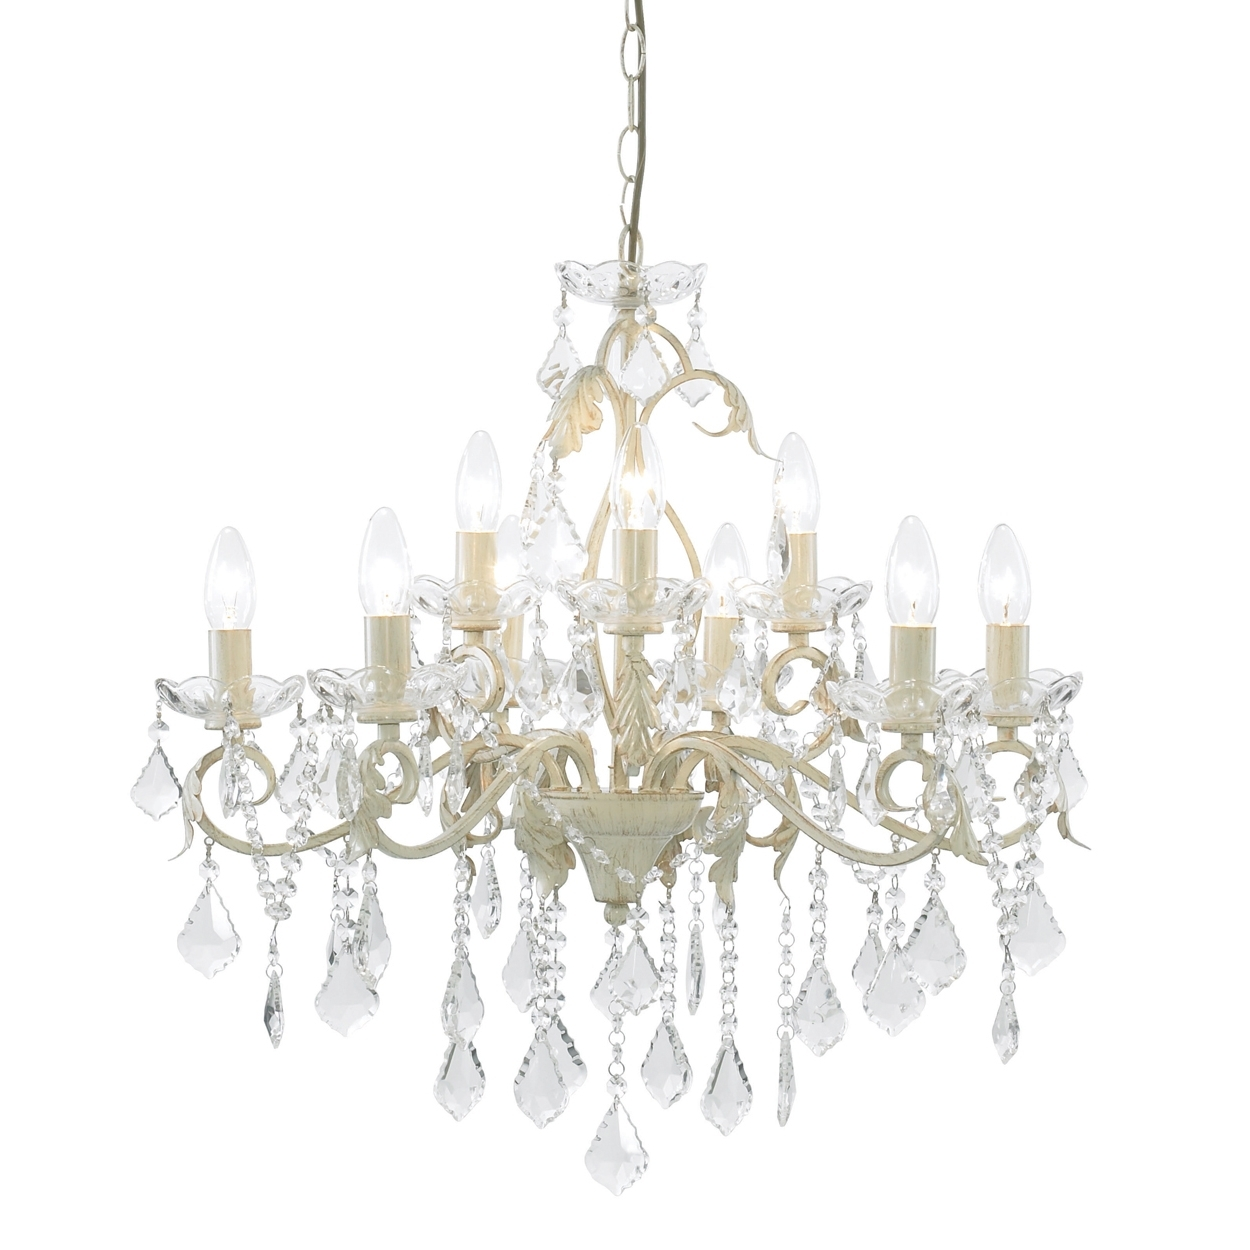 Chandeliers Design : Magnificent Cream And Gold Crystal Chandelier With Regard To Well Known Large Cream Chandelier (View 9 of 20)